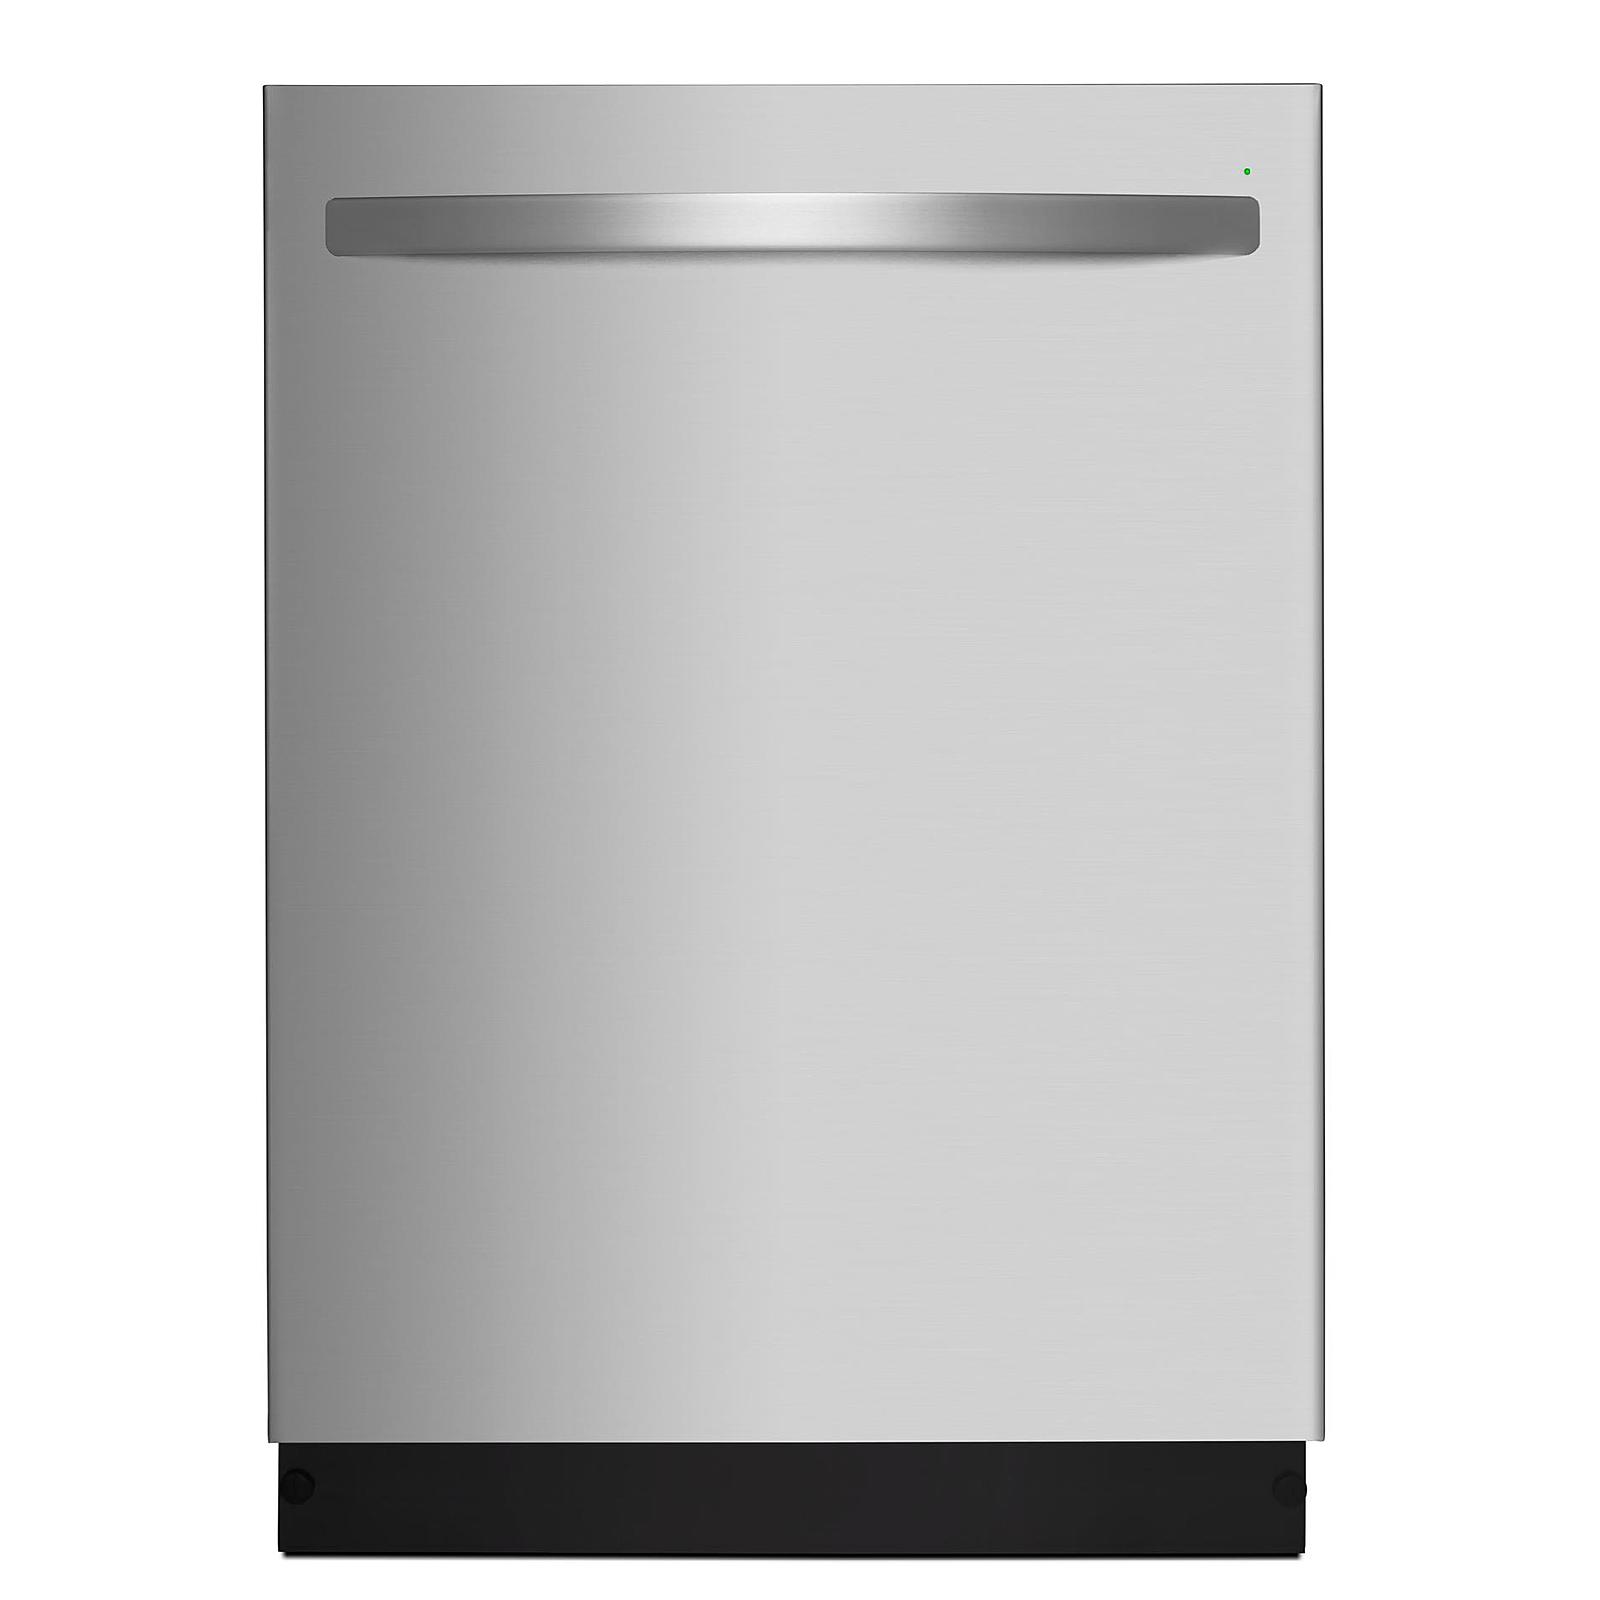 Kenmore 13543 24 Built-In Dishwasher w/ PowerWave Spray Arm - Stainless Steel